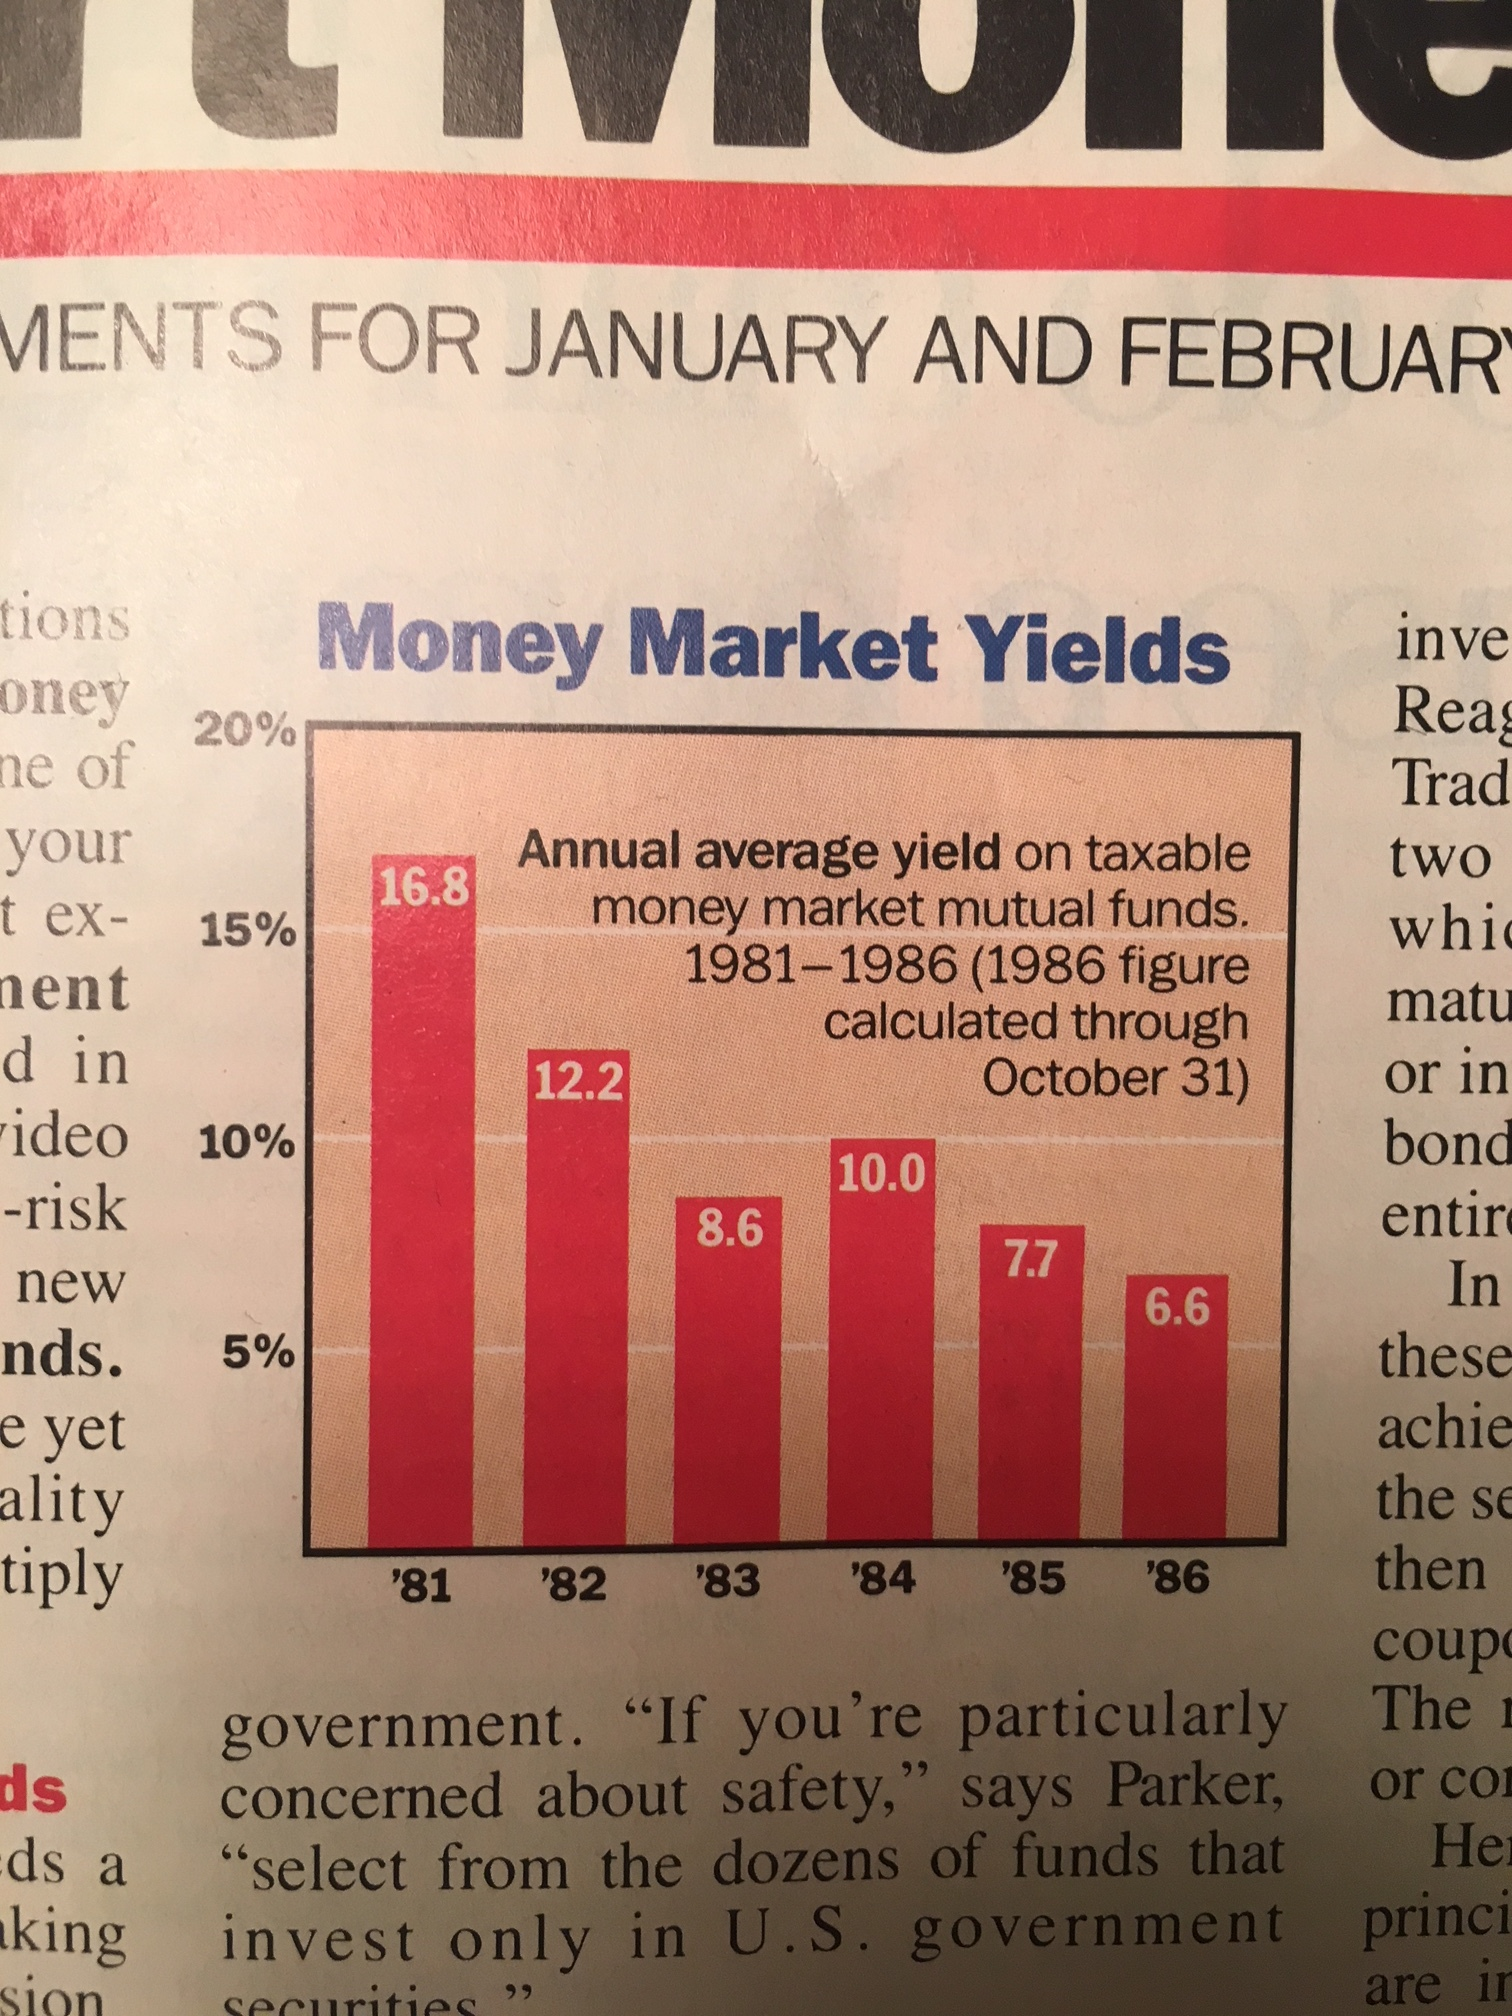 DO YOU SEE THAT 16.8% in 1981?!?!?!